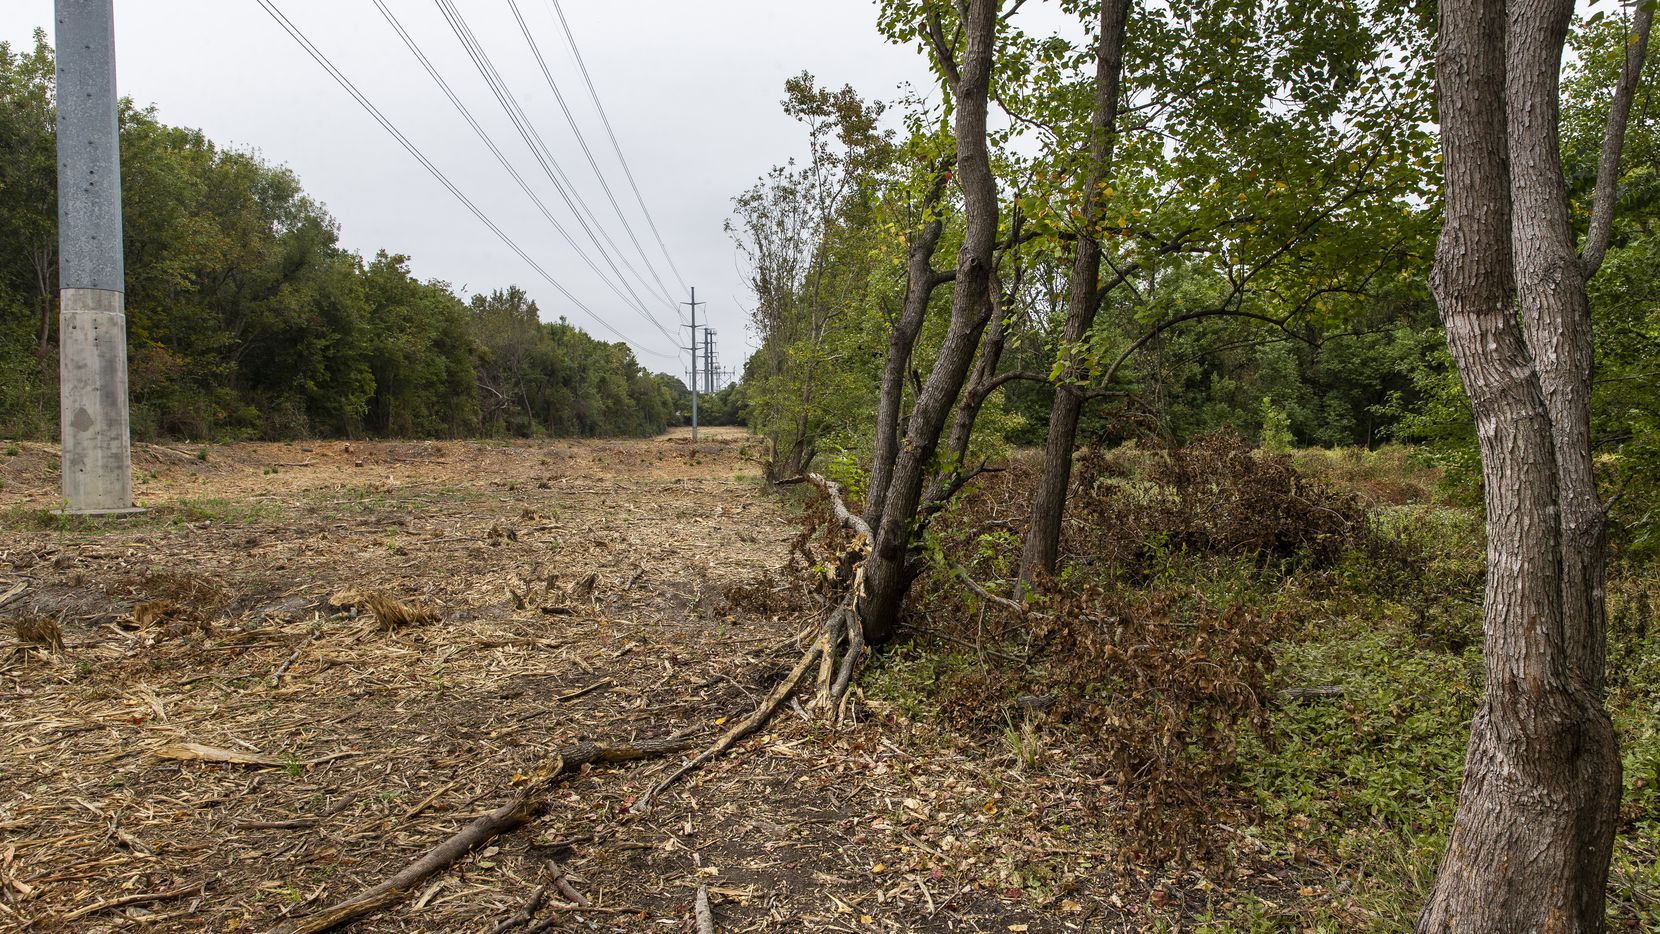 Mulched debris was all that remained Monday on a 3-acre stretch of Oncor right-of-way property within the Old Fish Hatchery nature area at the south end of White Rock Lake in Dallas.